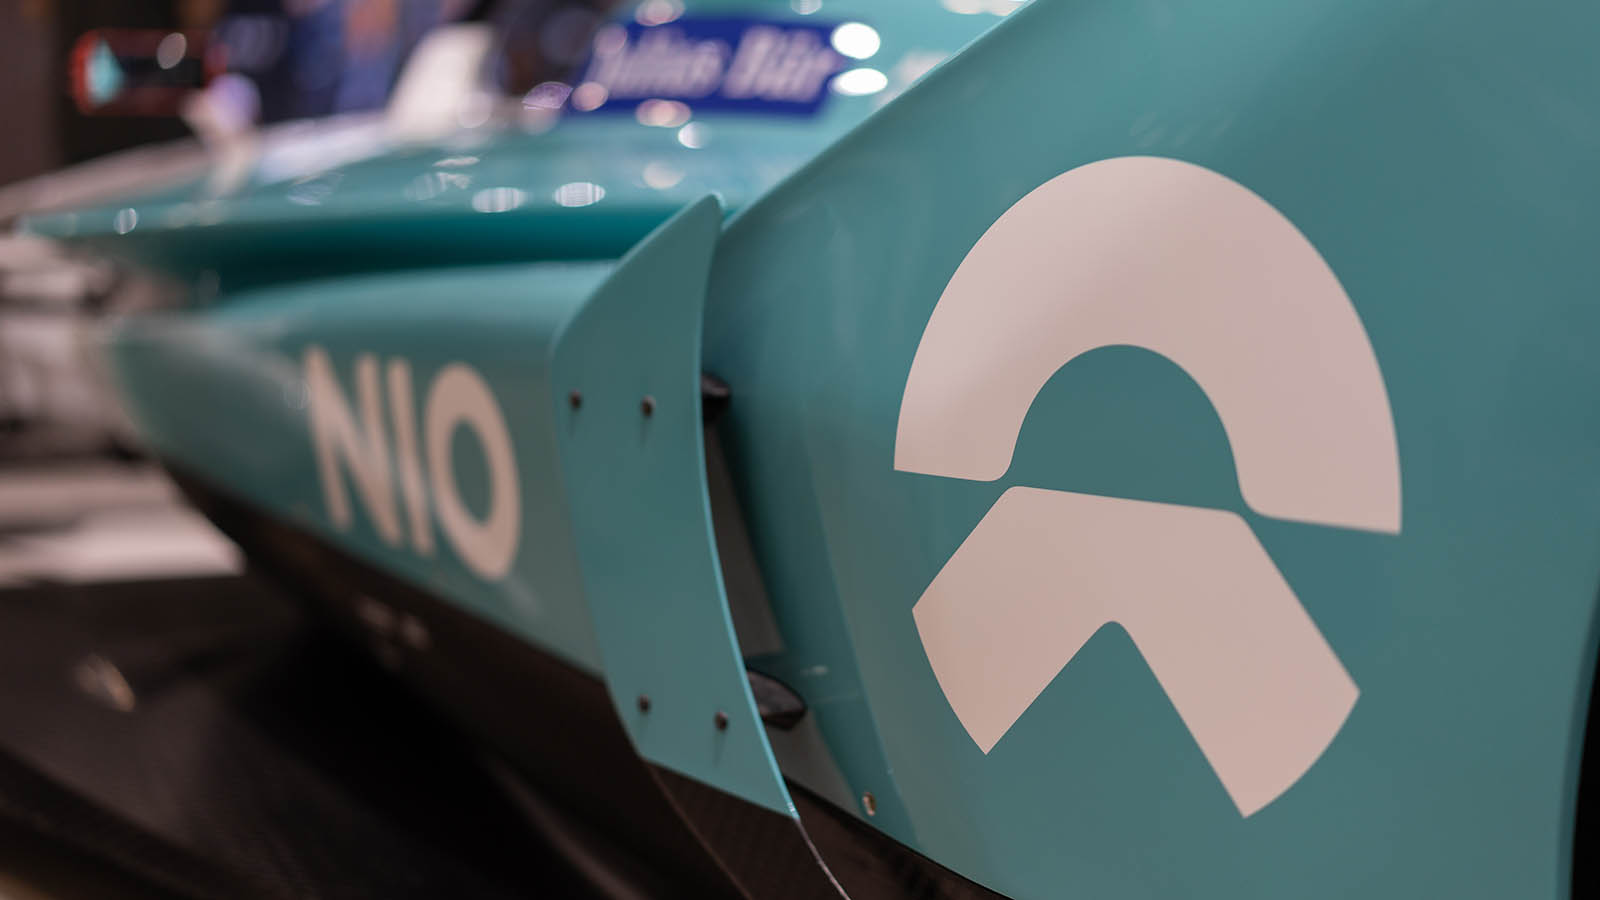 Nio Stock Still Speculative in Light of Tesla's China